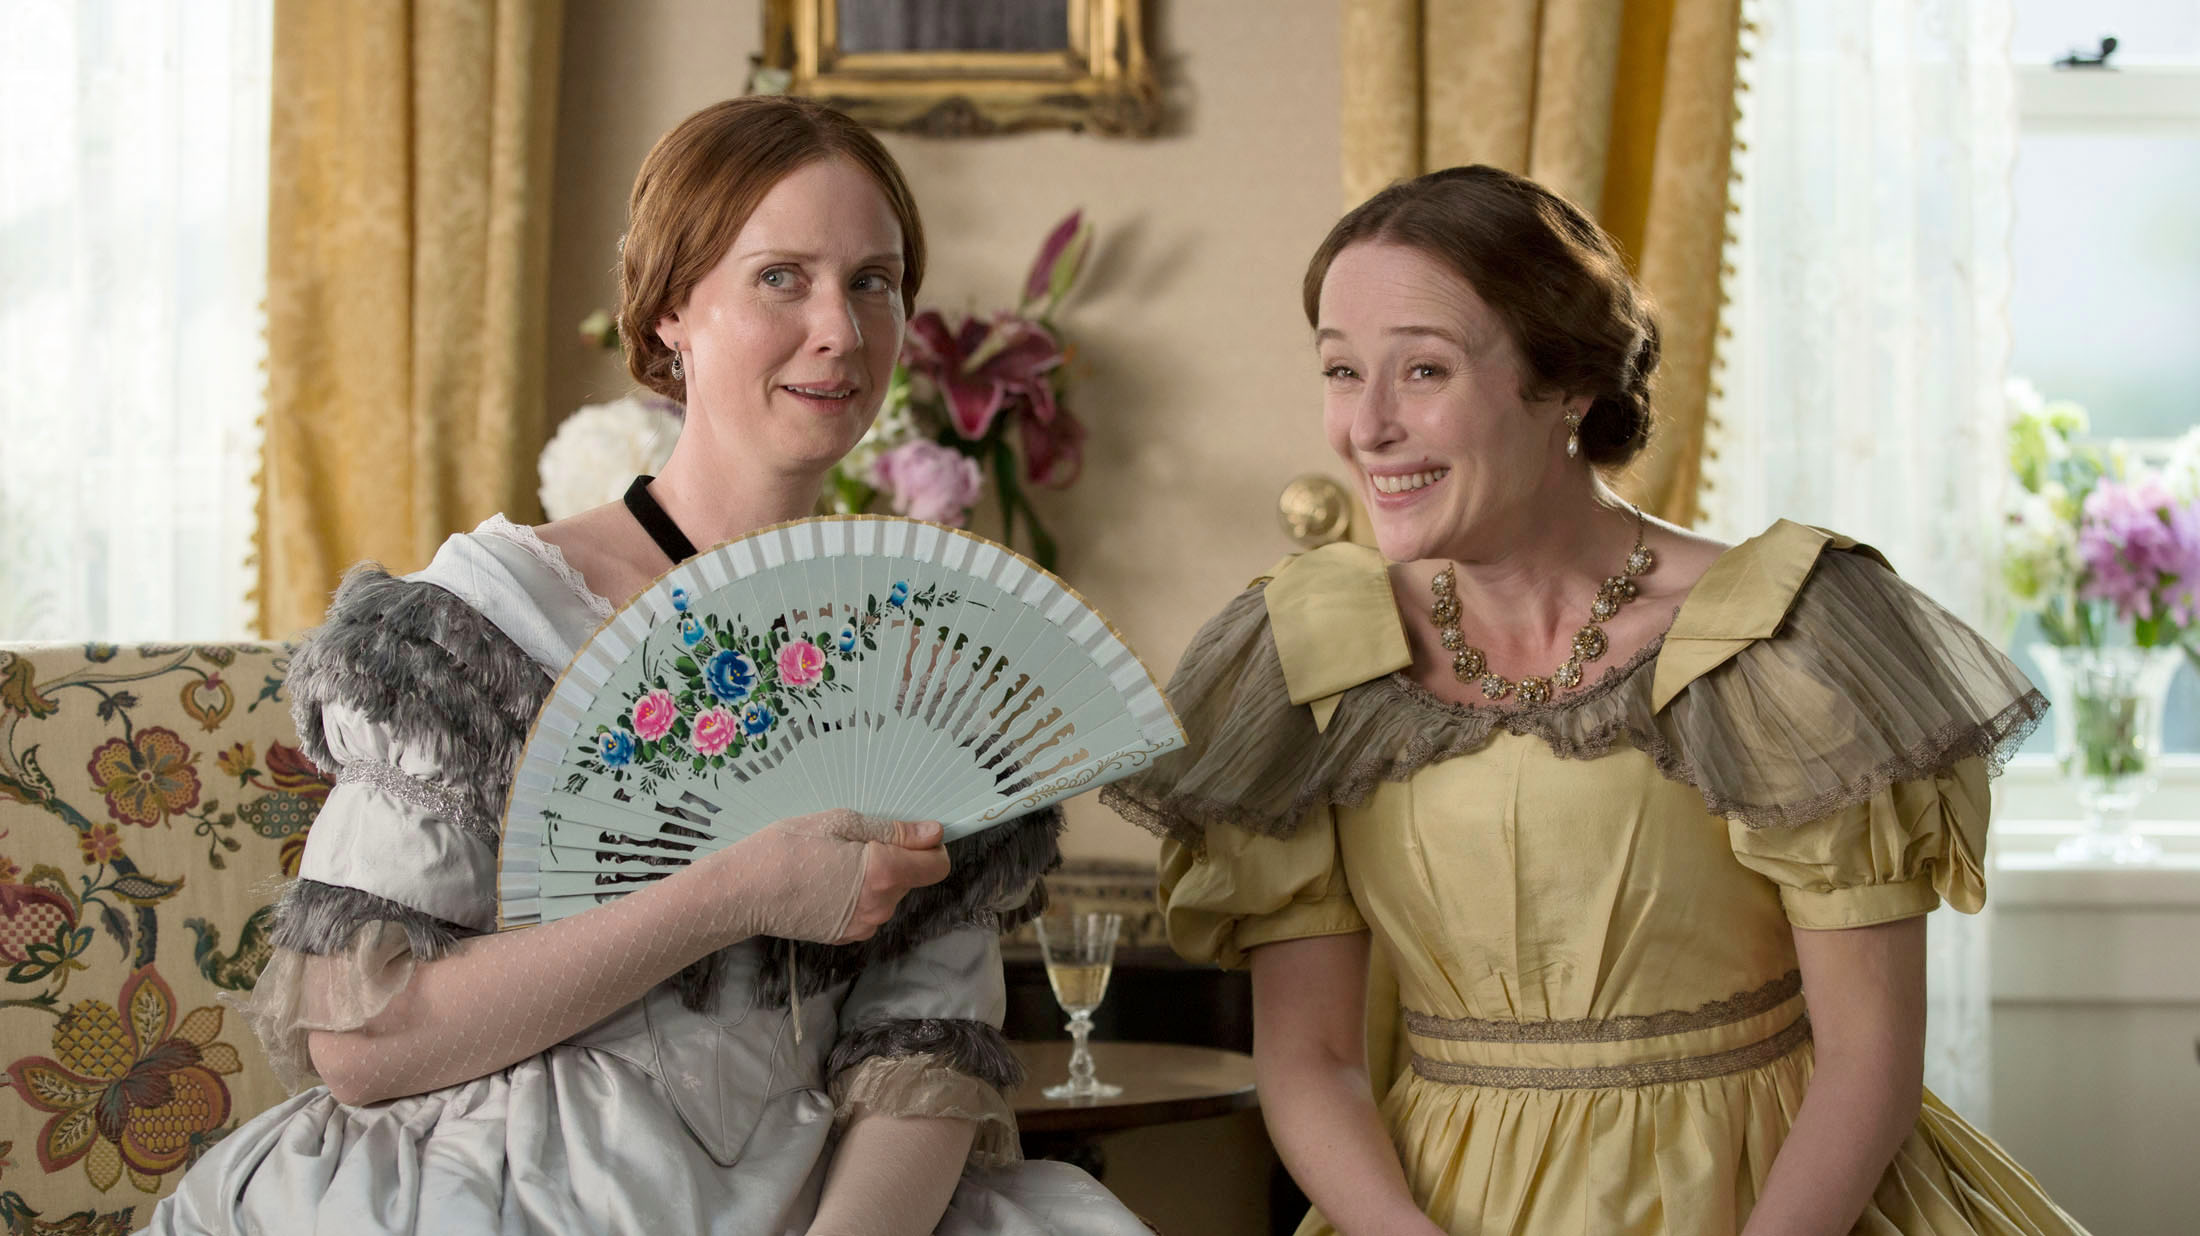 Cynthia Nixon & Jennifer Ehle in A QUIET PASSION directed by Terrence Davies - DoP Florian Hoffmeister. Courtesy Hurricane Films/Potemkino